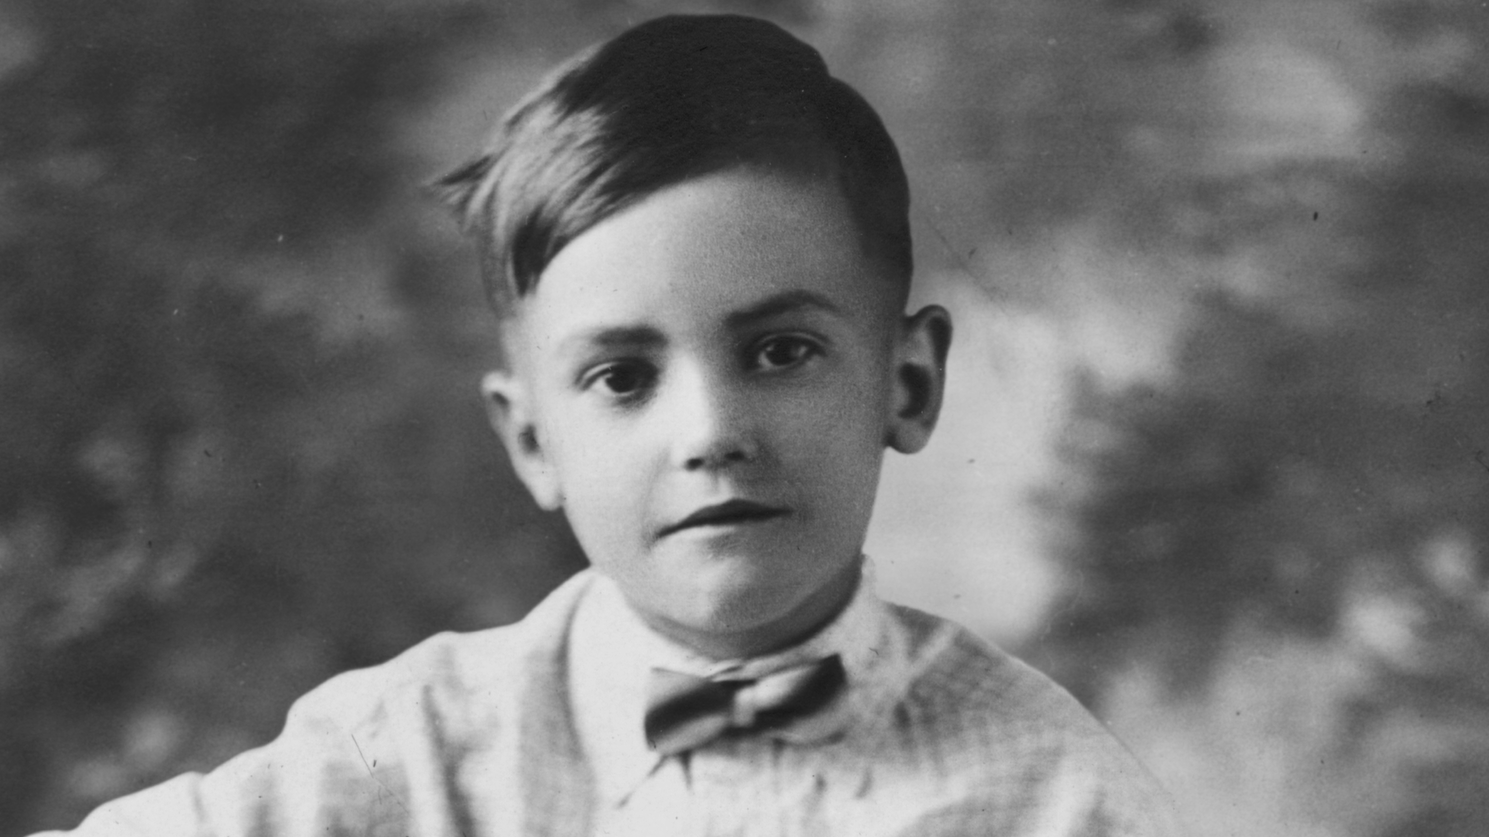 Maurice as young boy